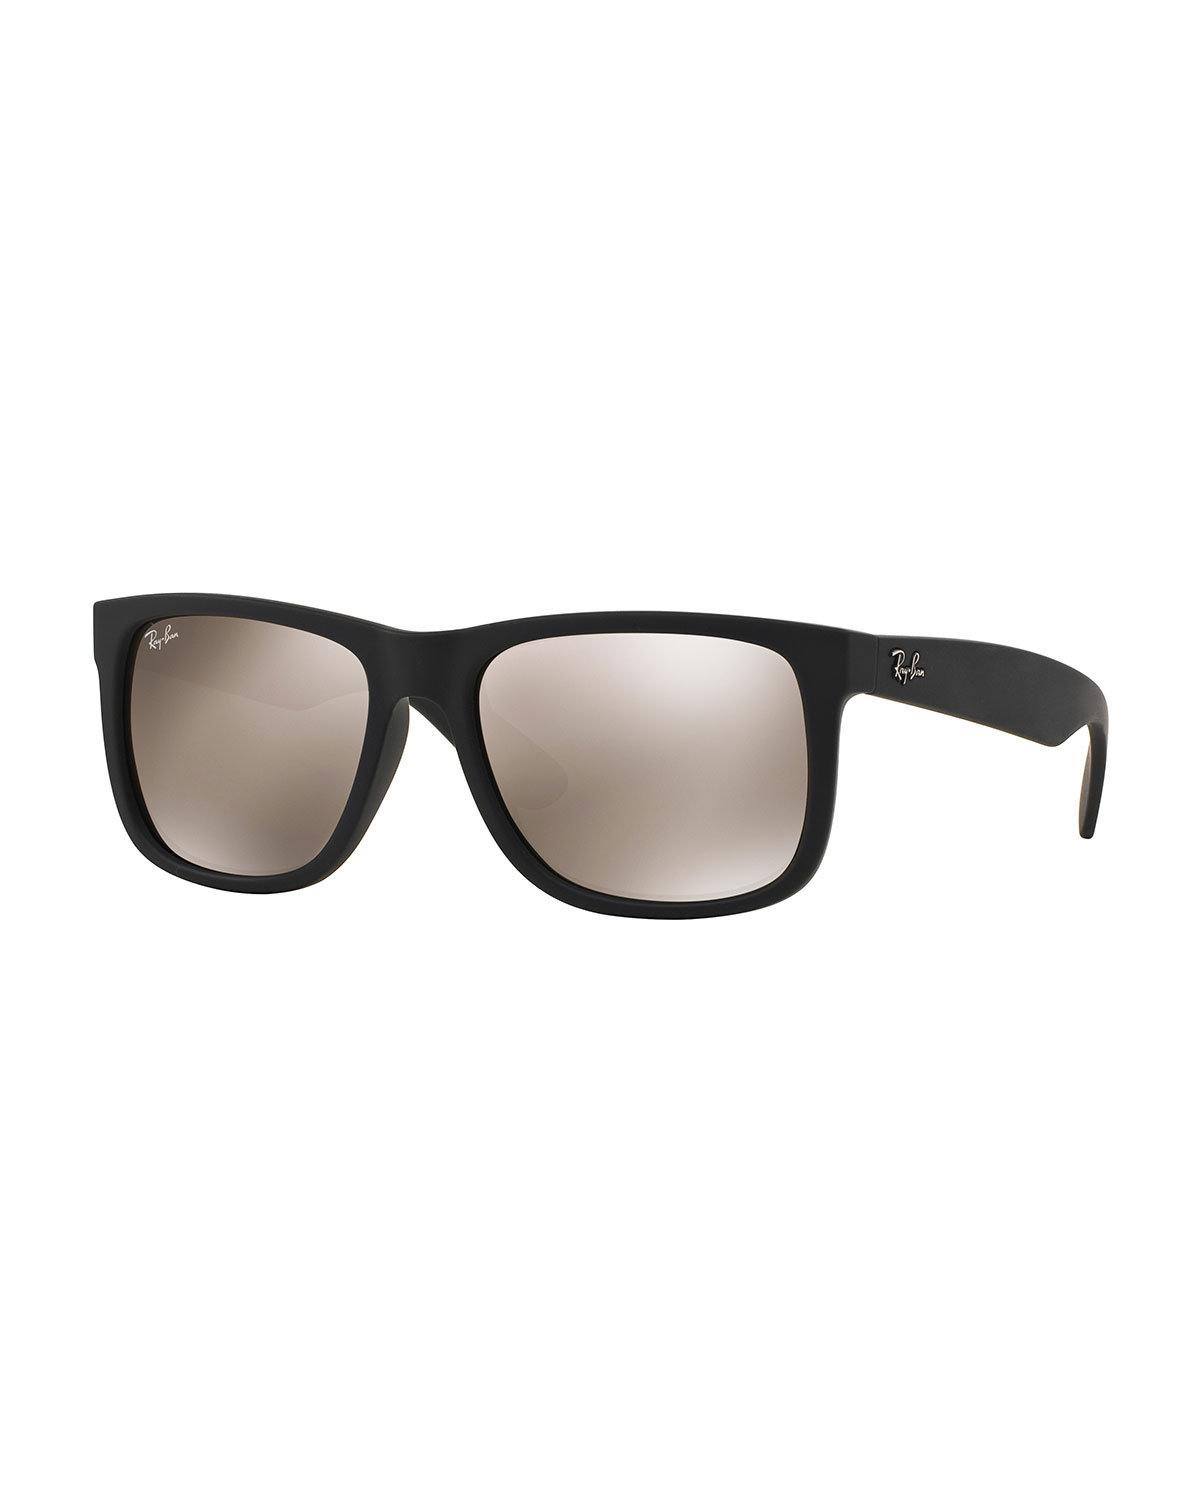 Lyst ray ban flat top sunglasses with mirror lenses in brown for Mirror sunglasses